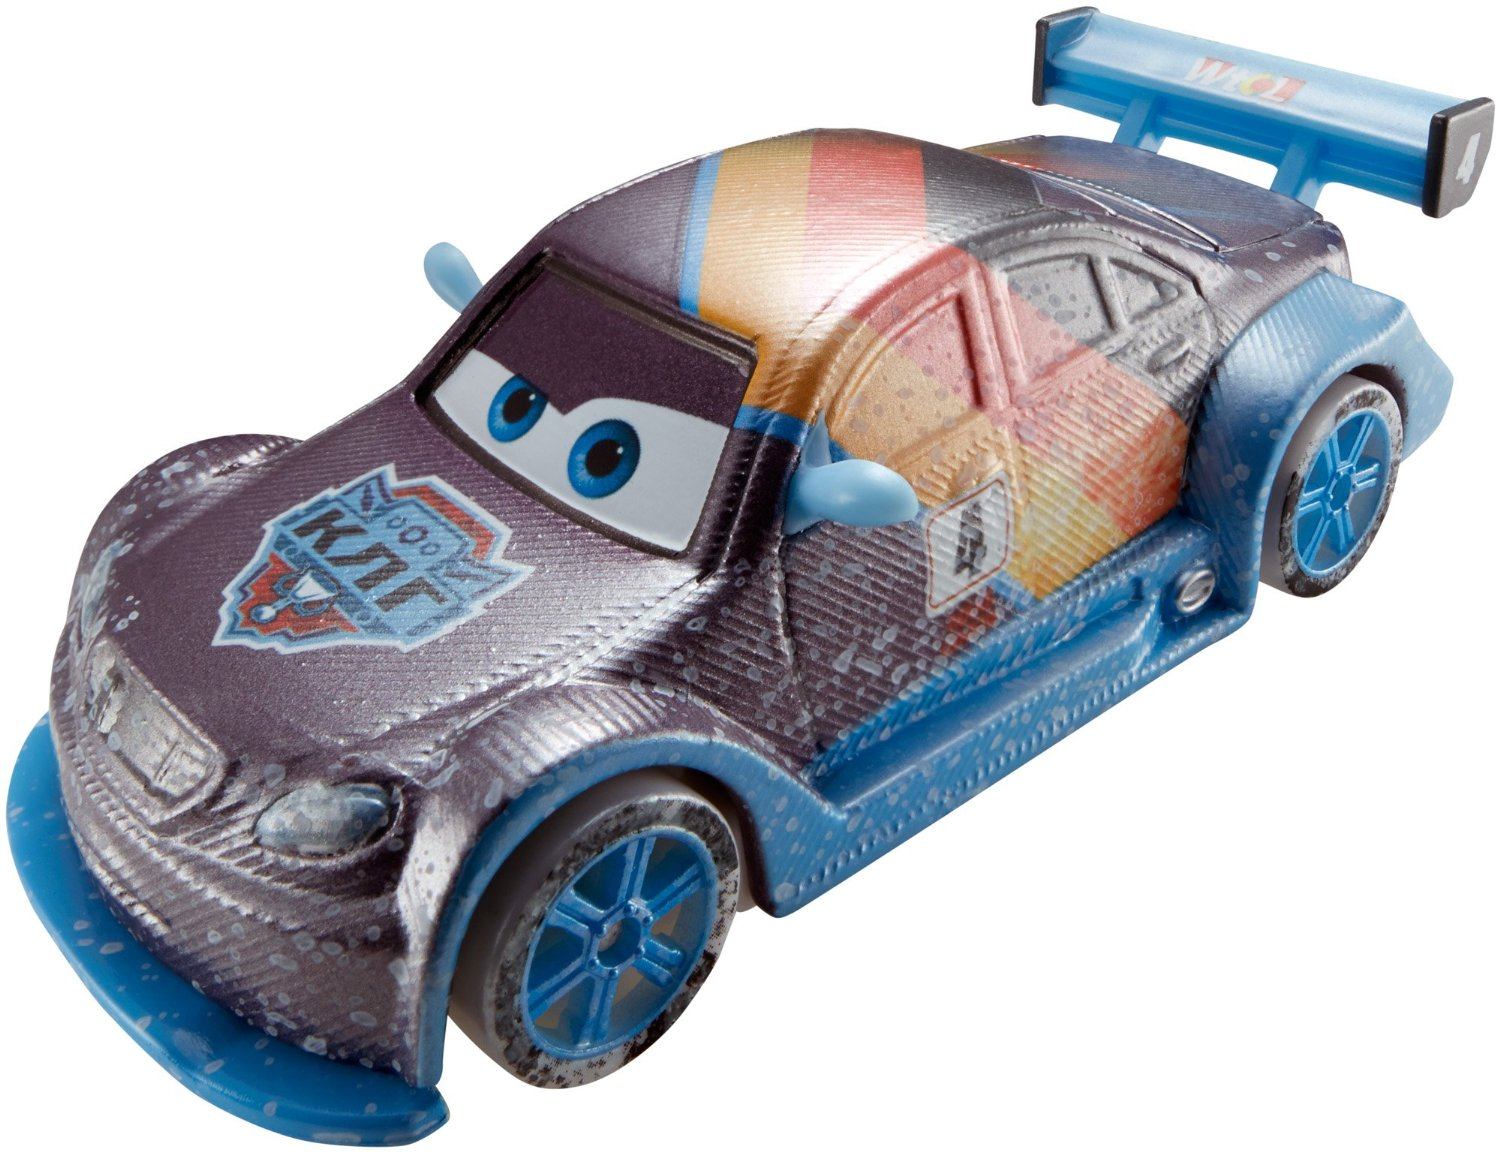 mattel cdr28 cars voiture max schnell s rie ice racers disney pixar. Black Bedroom Furniture Sets. Home Design Ideas